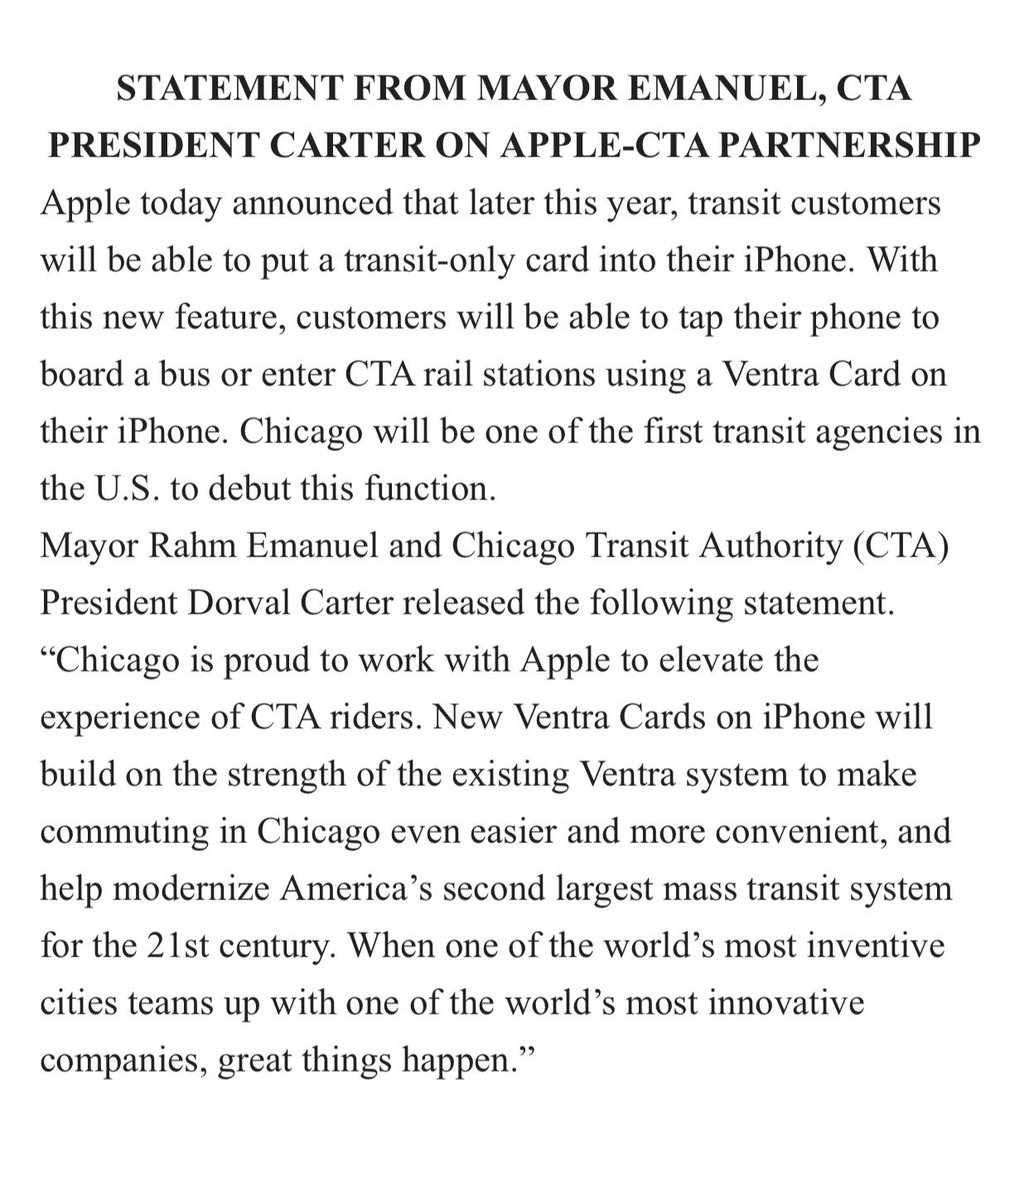 Chicago is proud to work with @Apple to elevate the experience of @CTA riders. New @VentraChicago Cards on #iPhone will build on the strength of the existing Ventra system to make commuting in Chicago even easier & more convenient. Full statement here: